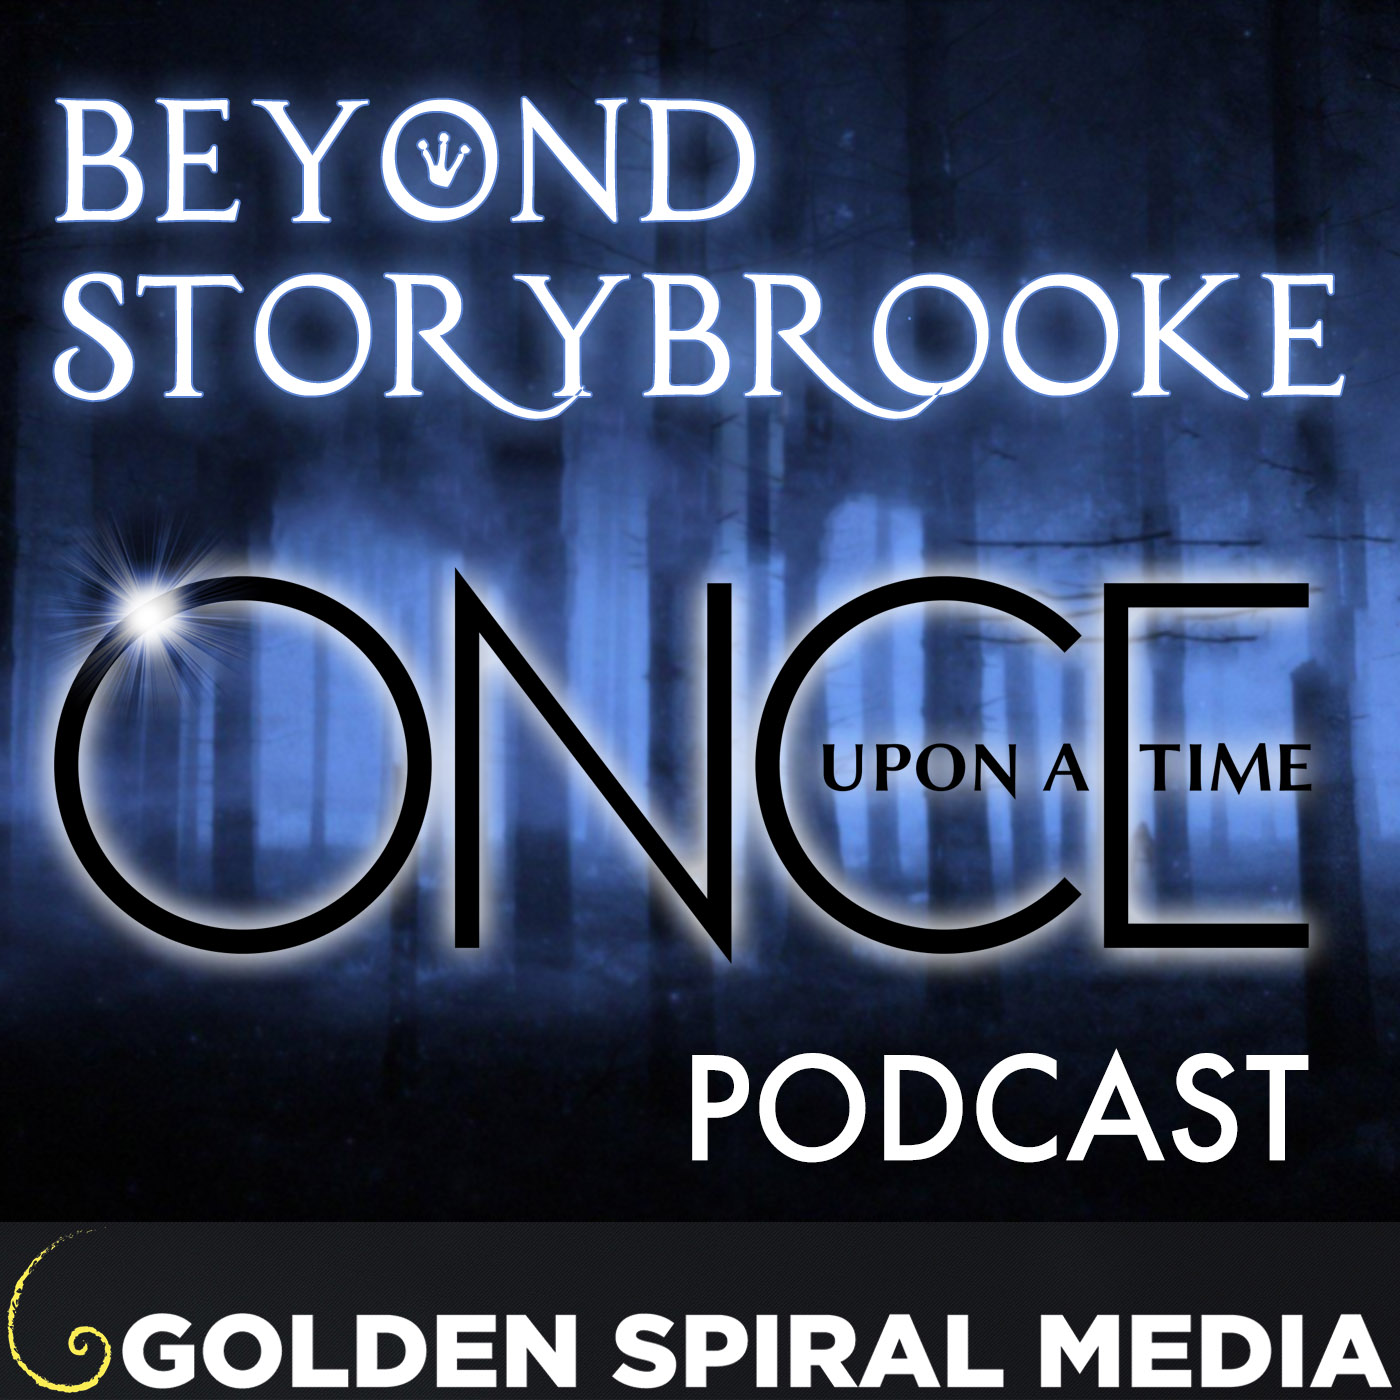 Beyond Storybrooke Once Upon a Time Podcast